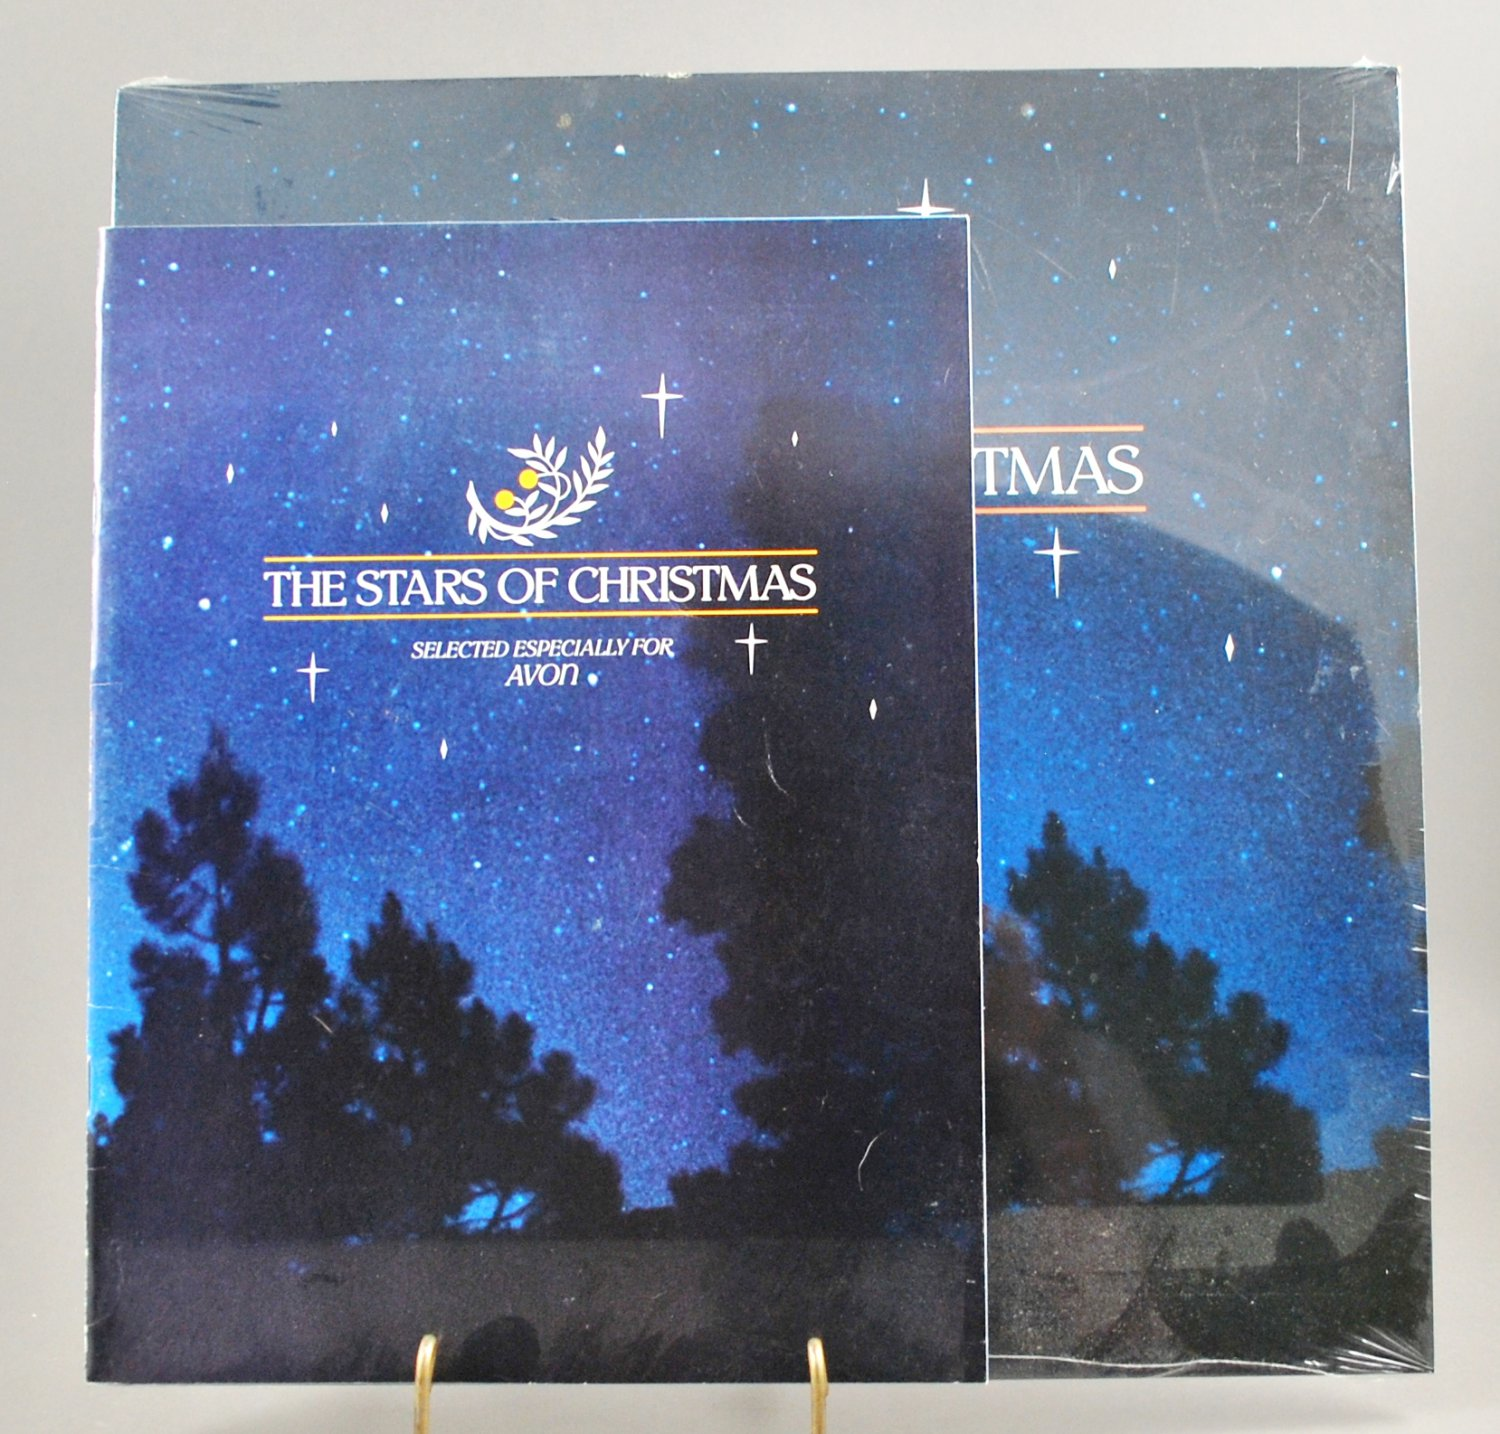 1988 Avon The Stars of Christmas Vinyl LP Record